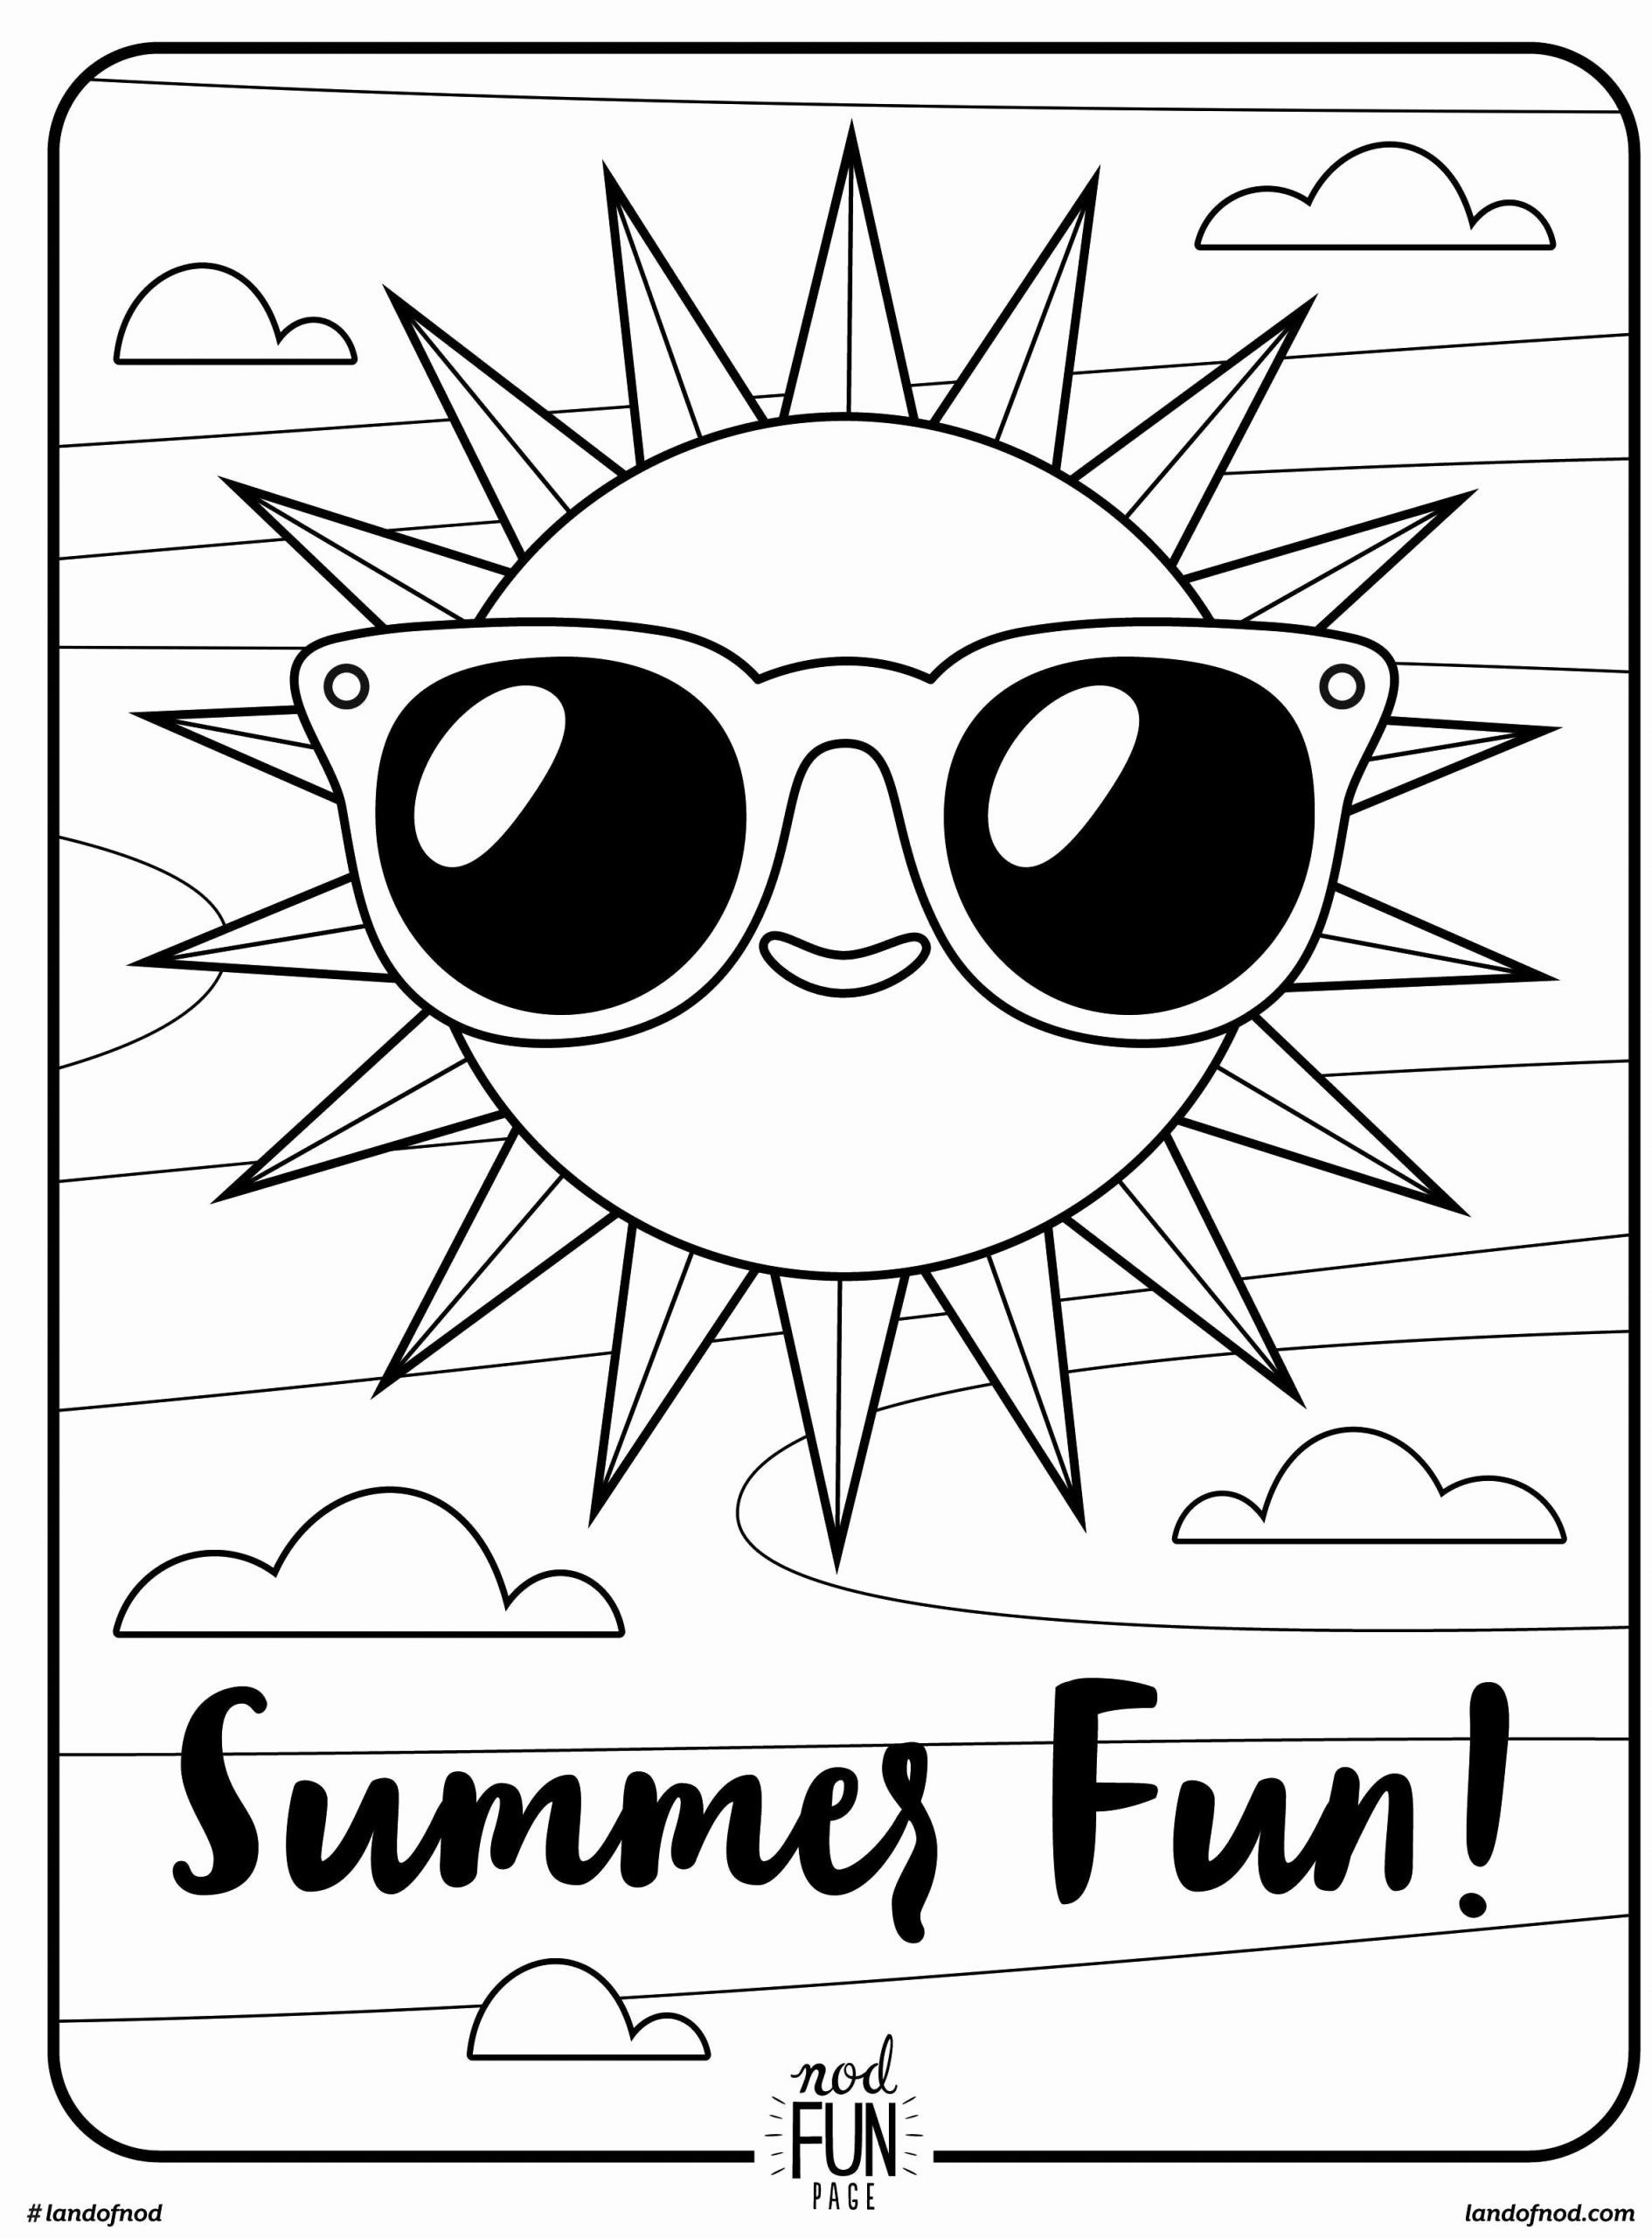 Summer Fun Coloring Pages Beautiful Free Printable Coloring Page Summer Fun Summer Summer Coloring Sheets Cool Coloring Pages Beach Coloring Pages